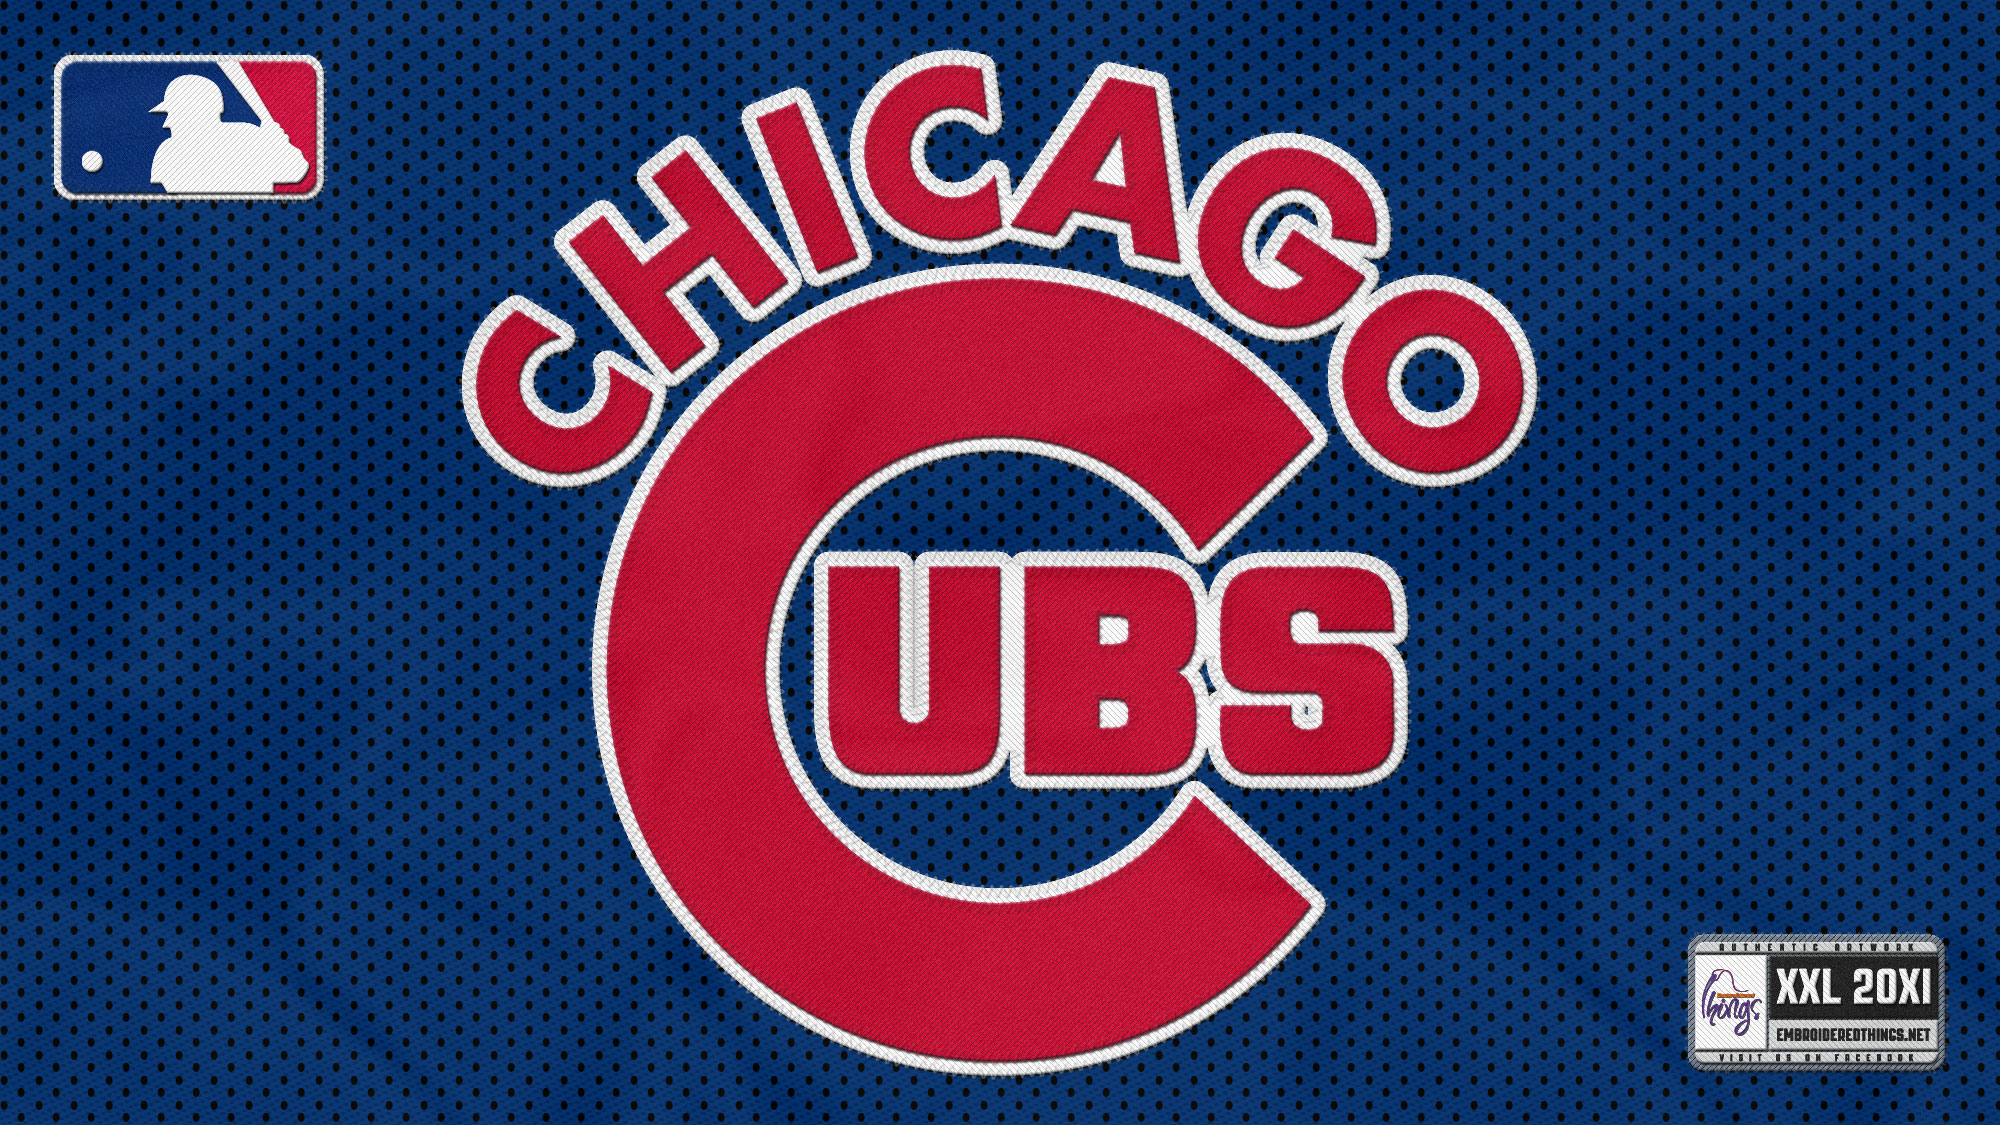 Chicago Cubs wallpapers Chicago Cubs background 2000x1125